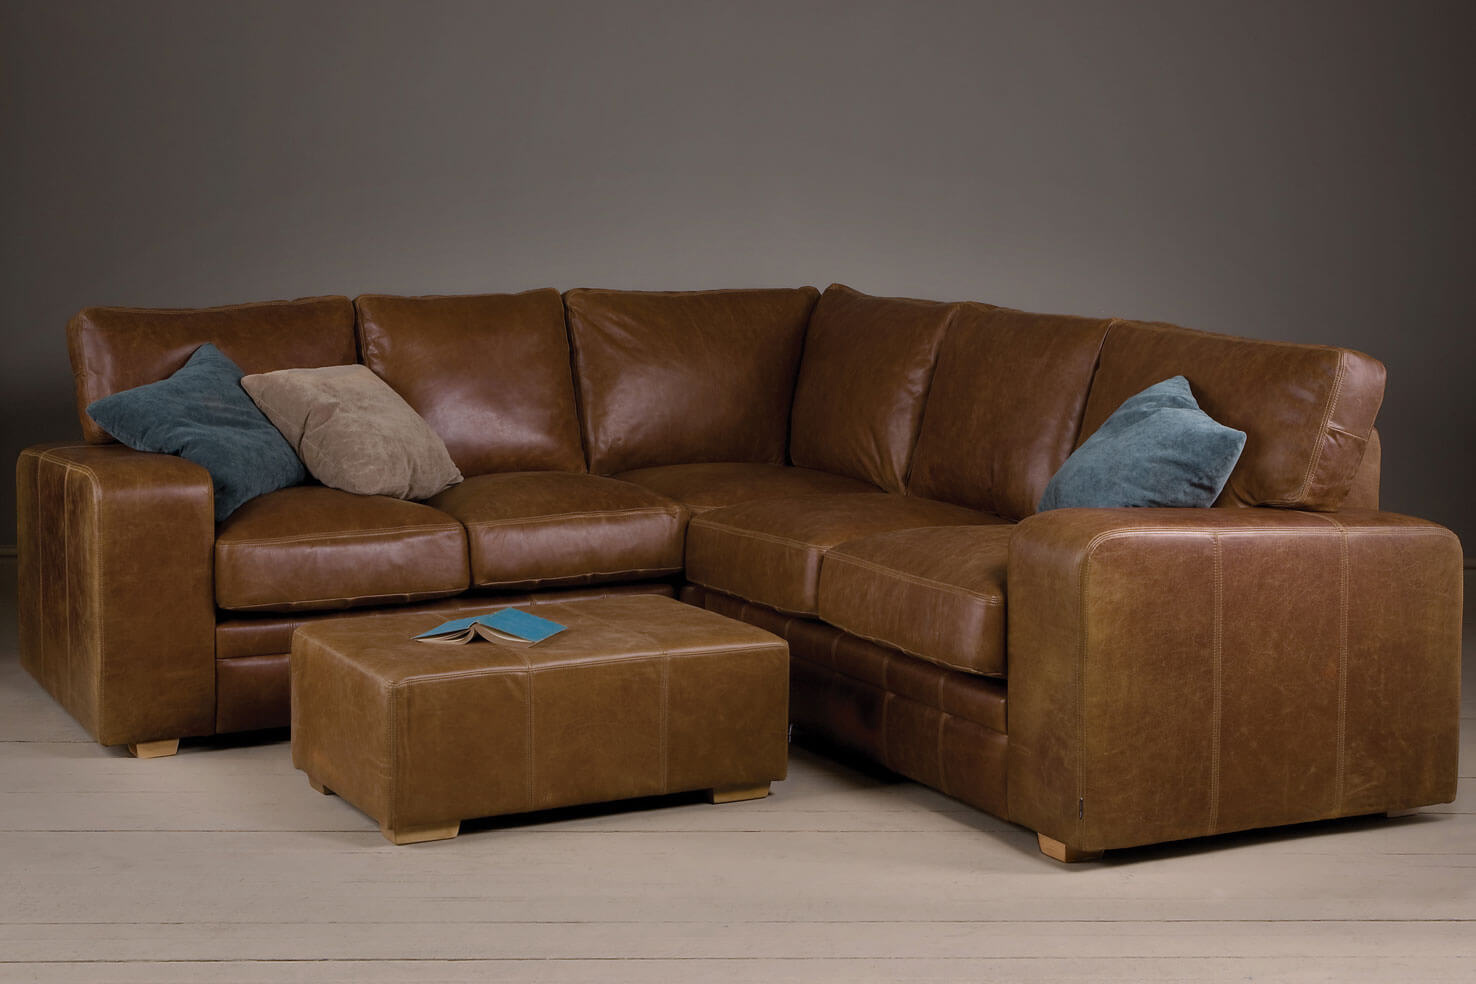 broad arm leather corner sofa with a footstool TGZXHQU